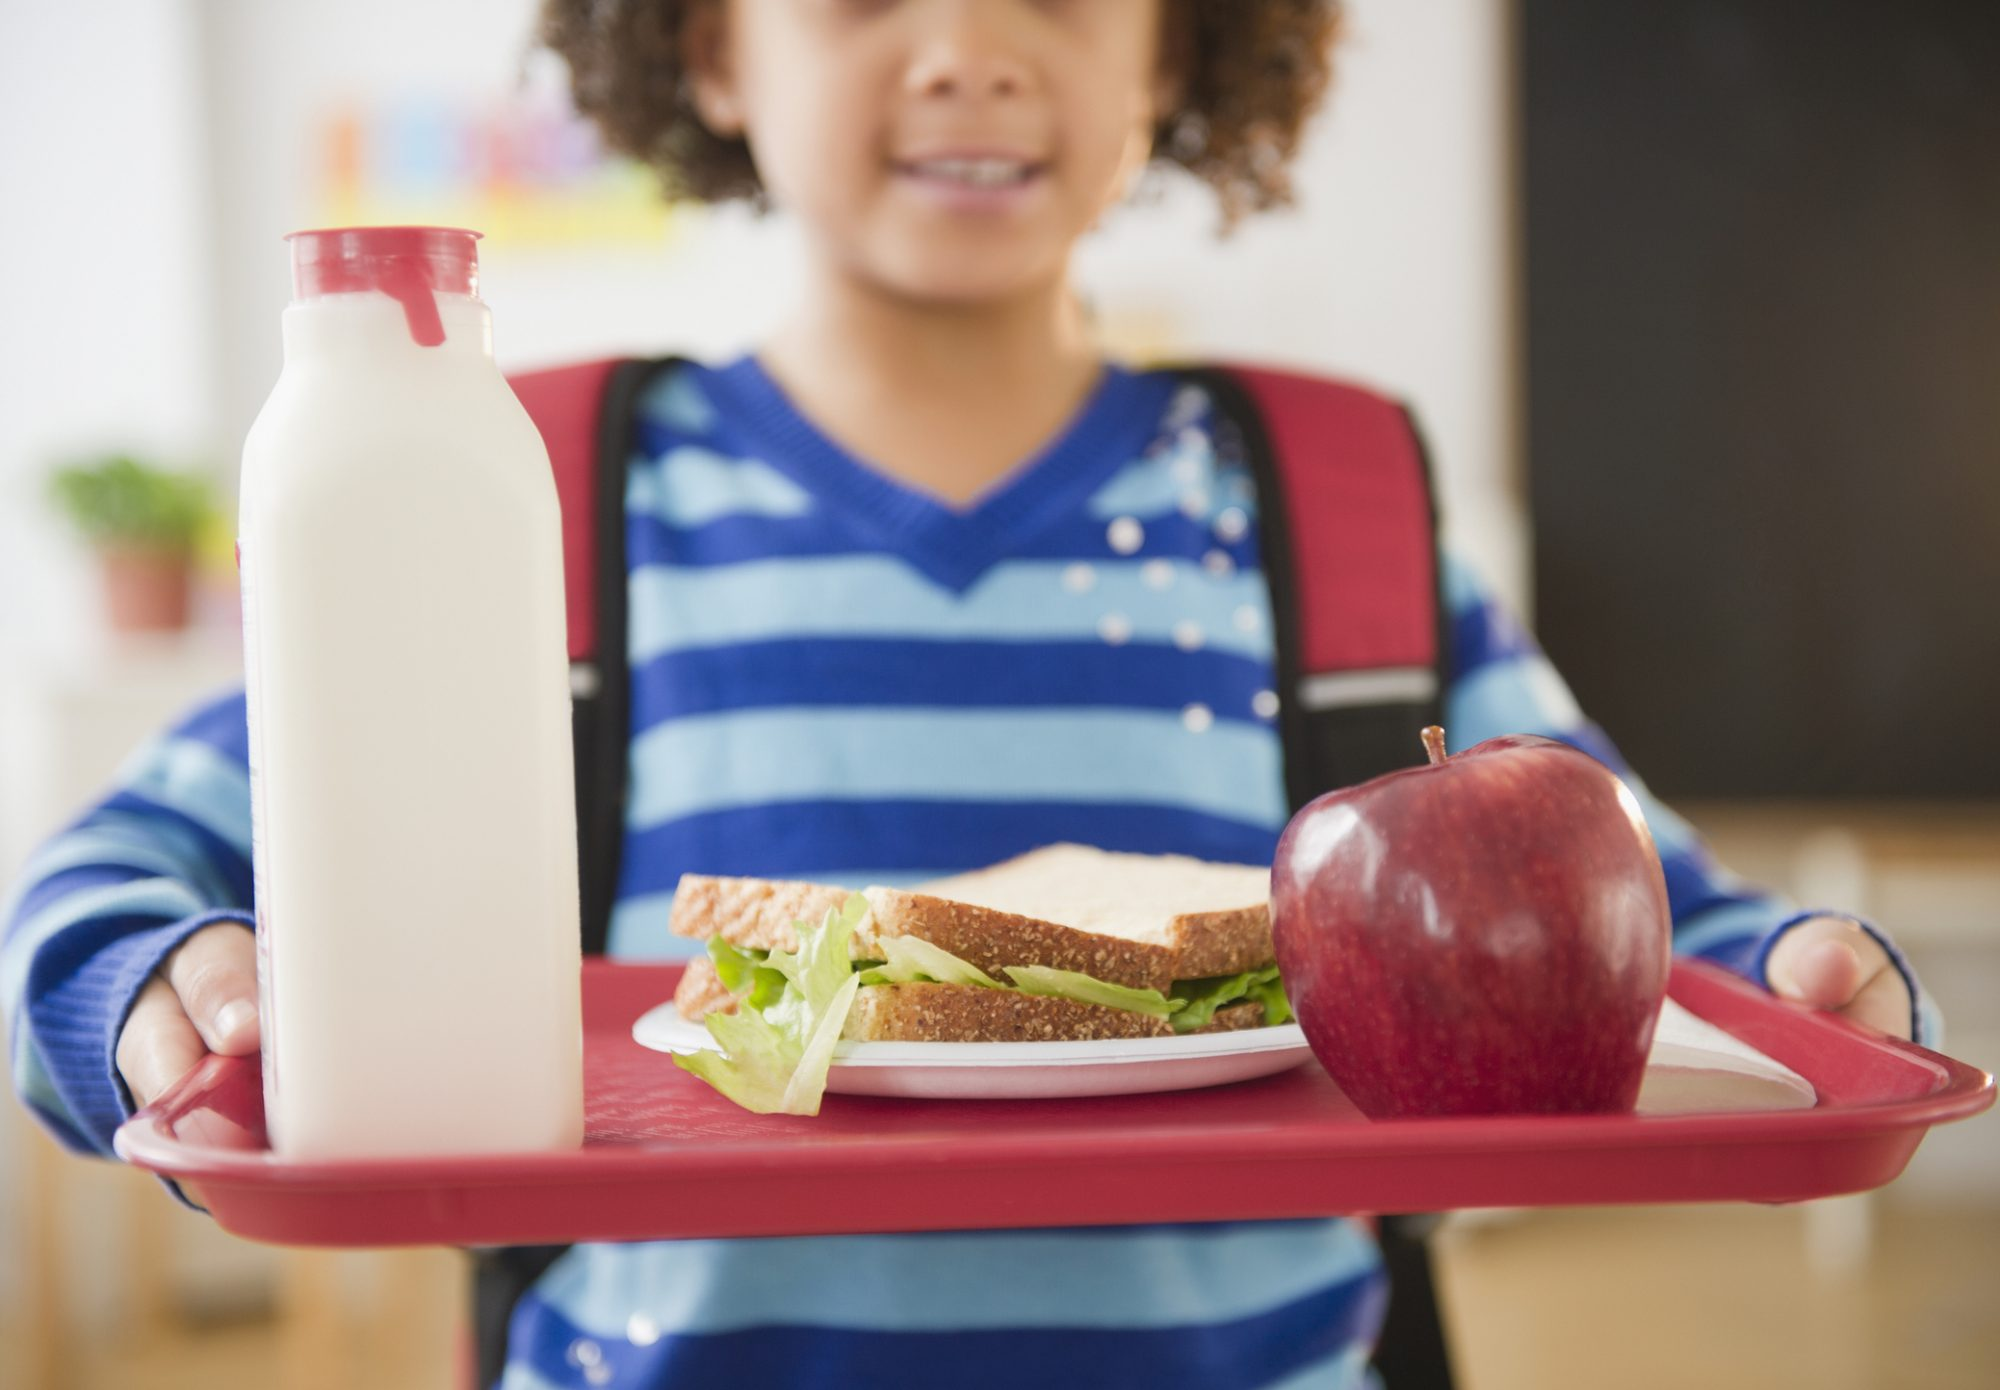 The Government Is Putting More Dairy Back in School Lunches